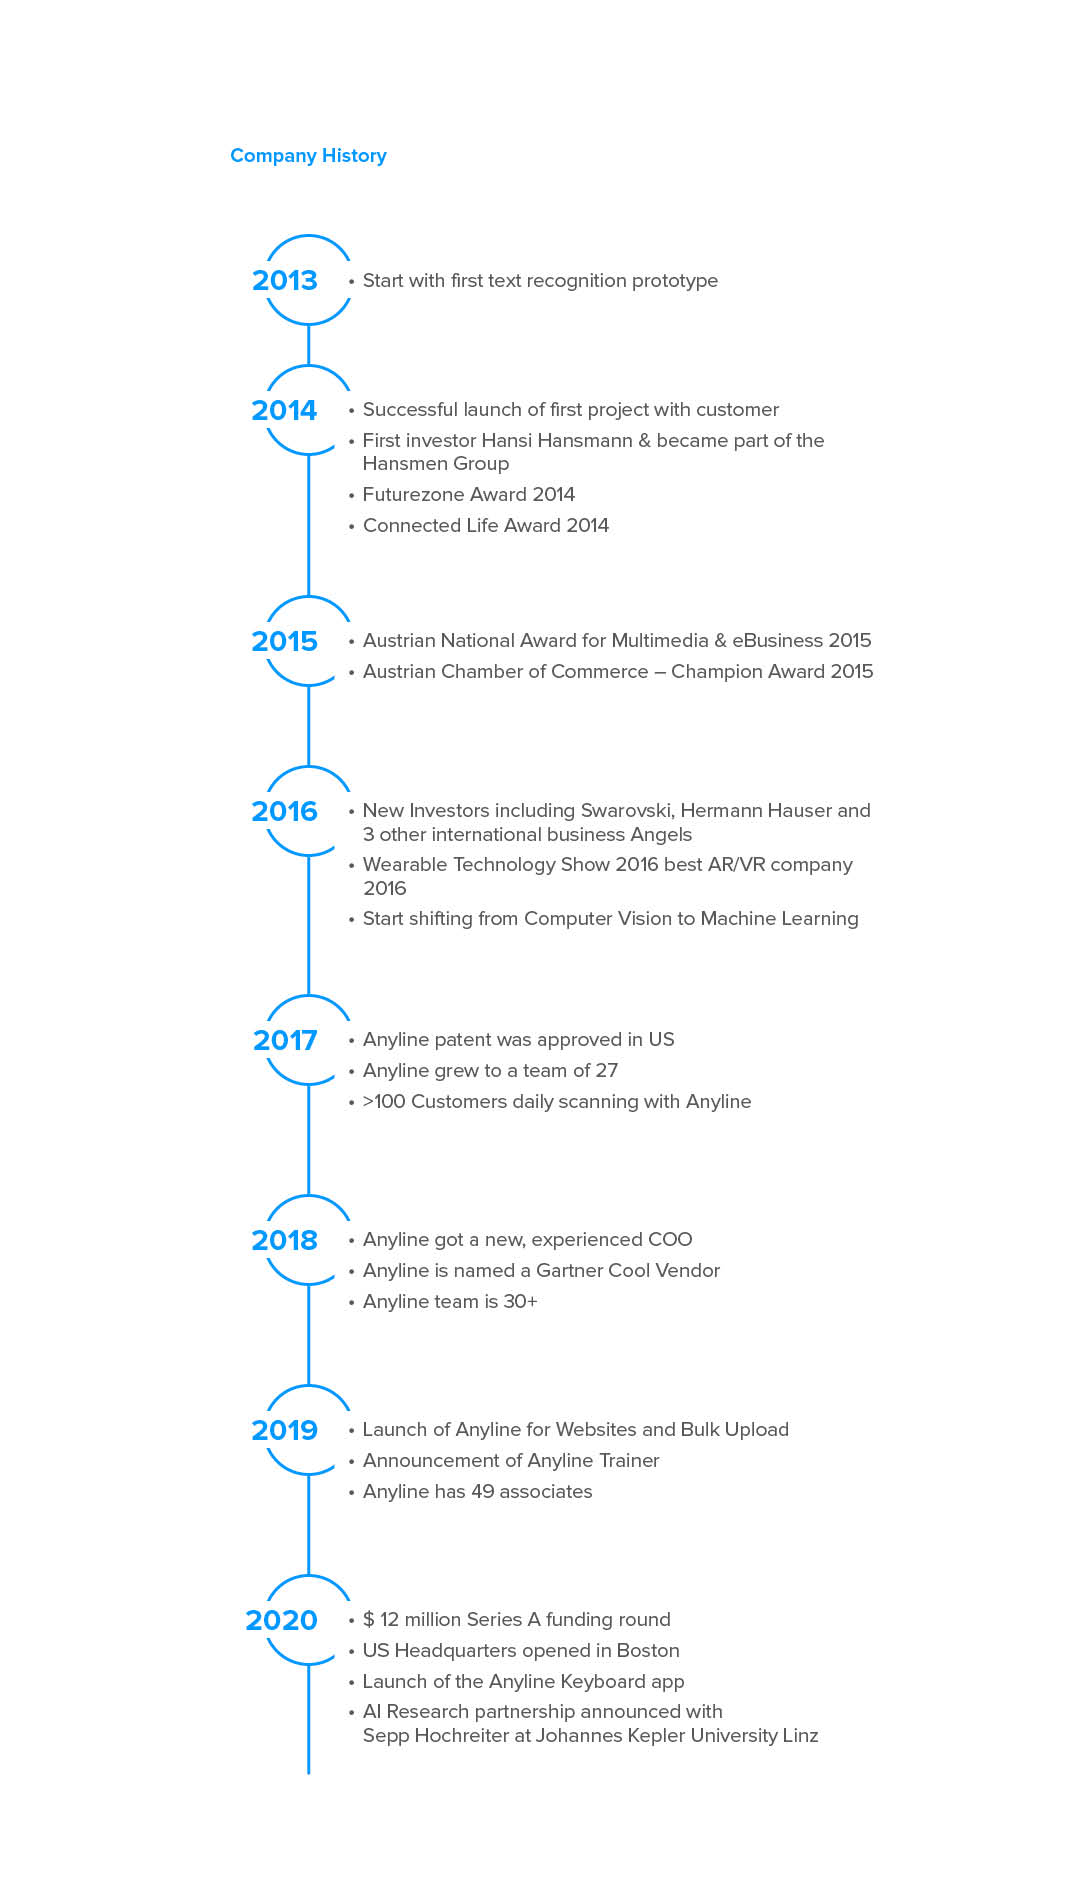 Anyline Timeline - History and Achievements of Anyline